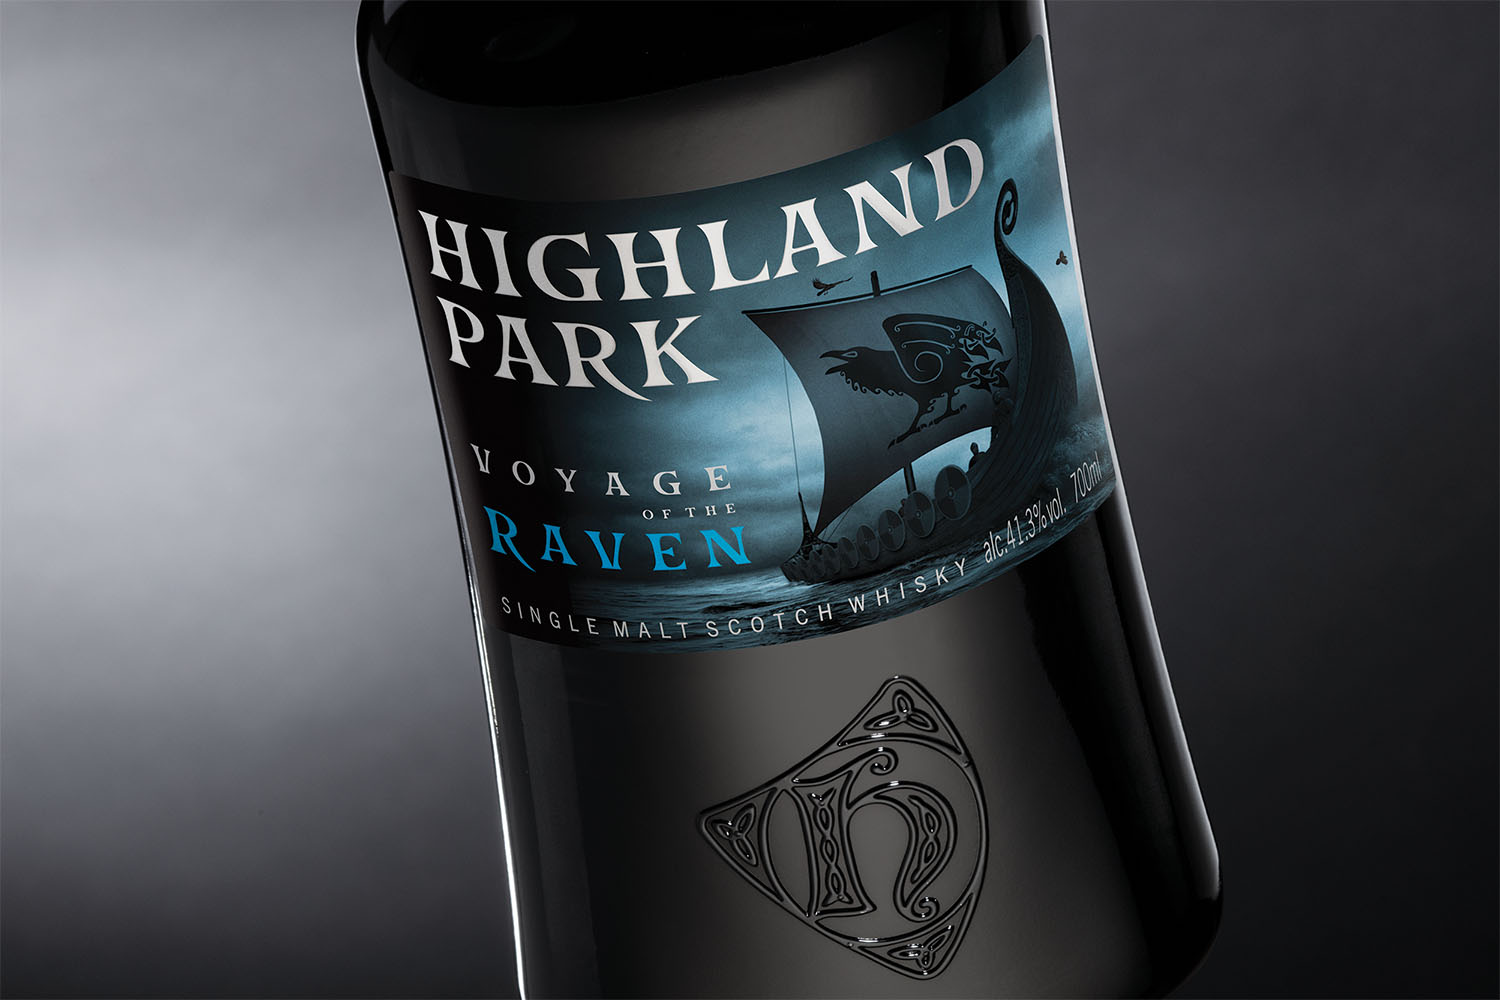 Mountain_Highland Park_Raven_008.jpg